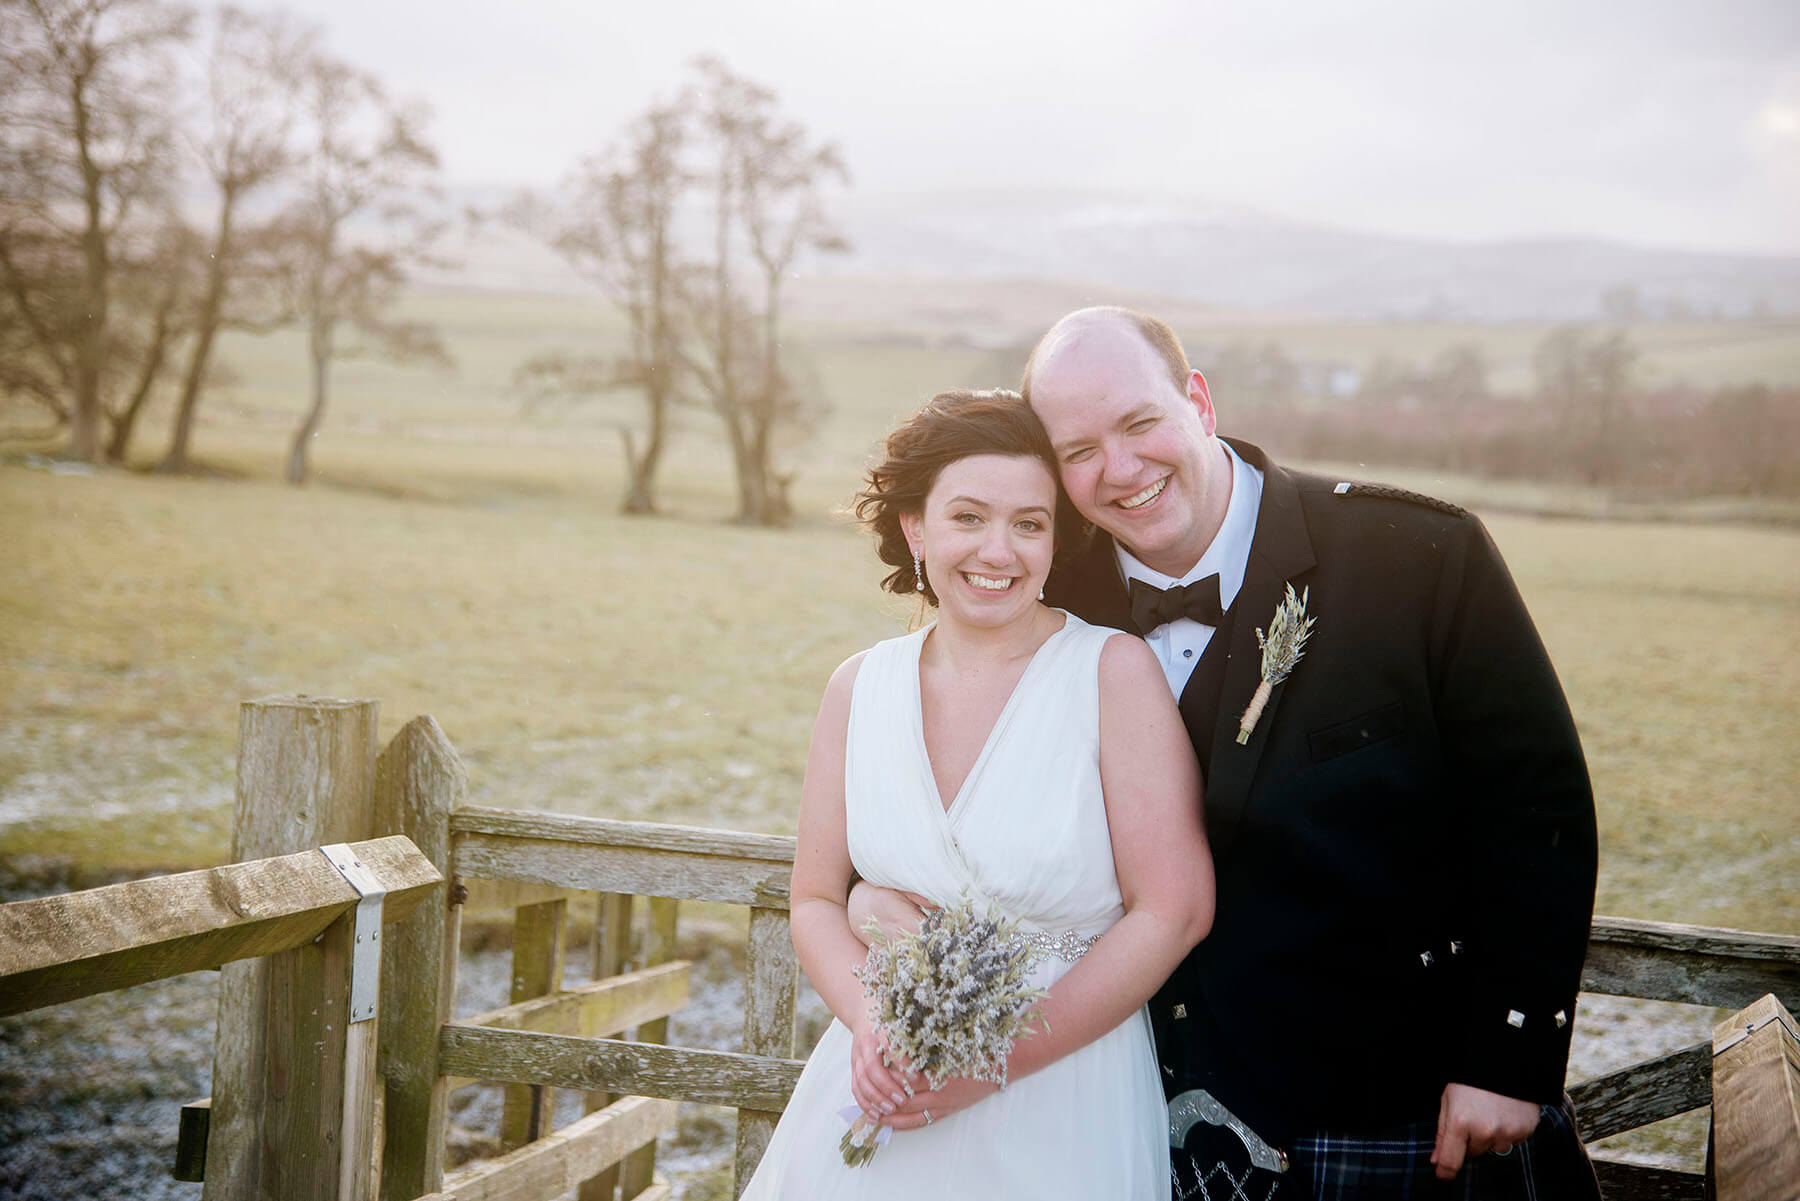 Bride and groom stood in front of Cumbrian landscape